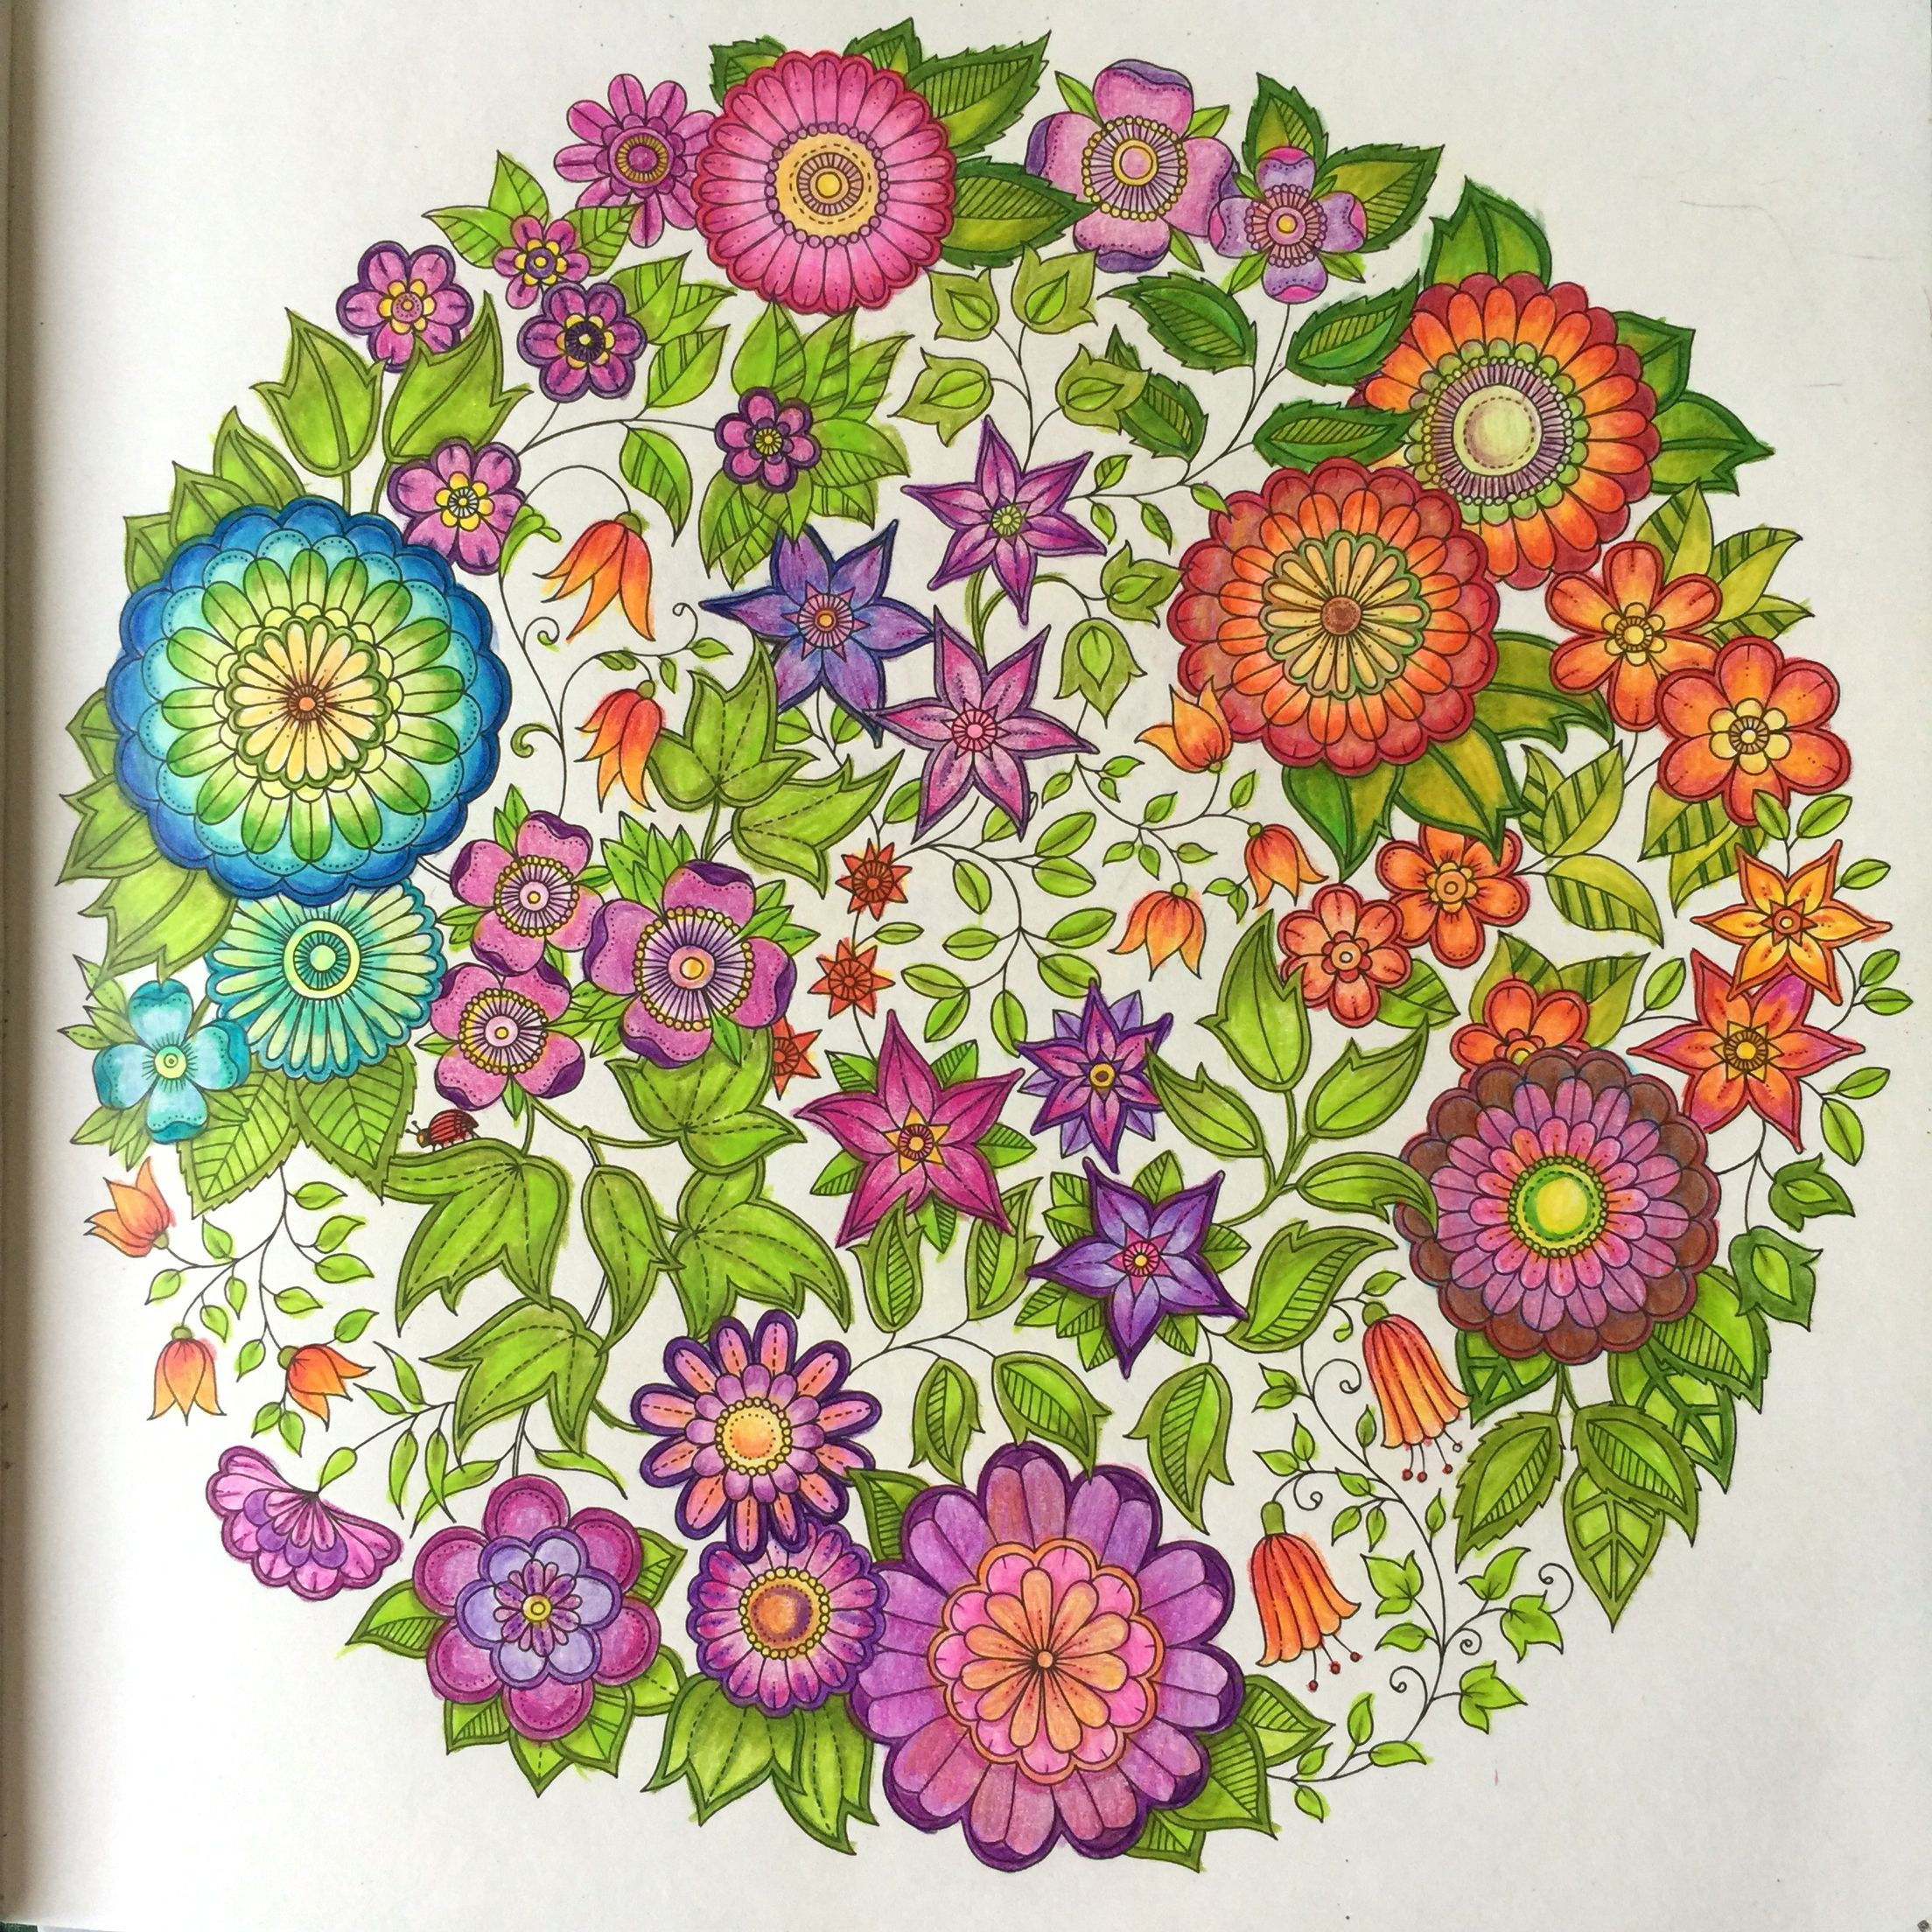 Pin By Pammy On Basford Planner Johanna Basford Coloring Basford Coloring Johanna Basford Coloring Book